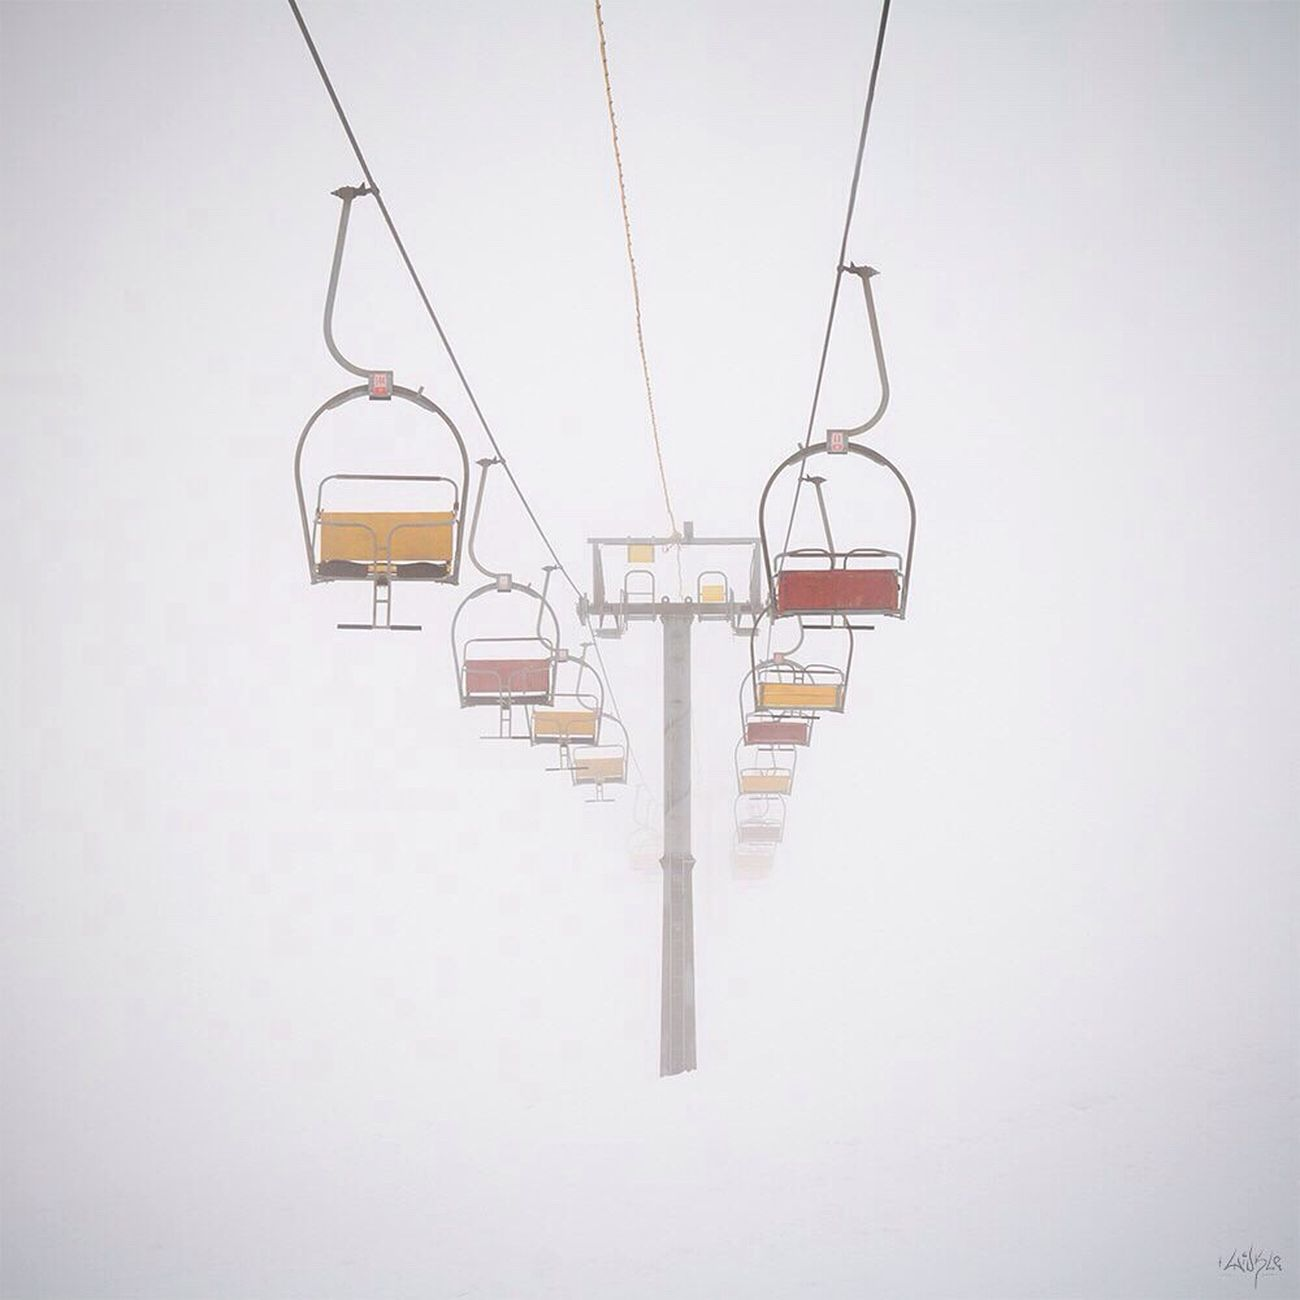 Snow Cold Temperature Winter Ski Lift White White Color Day Canon400d Mountains Dombay Landscape Minimalism No People